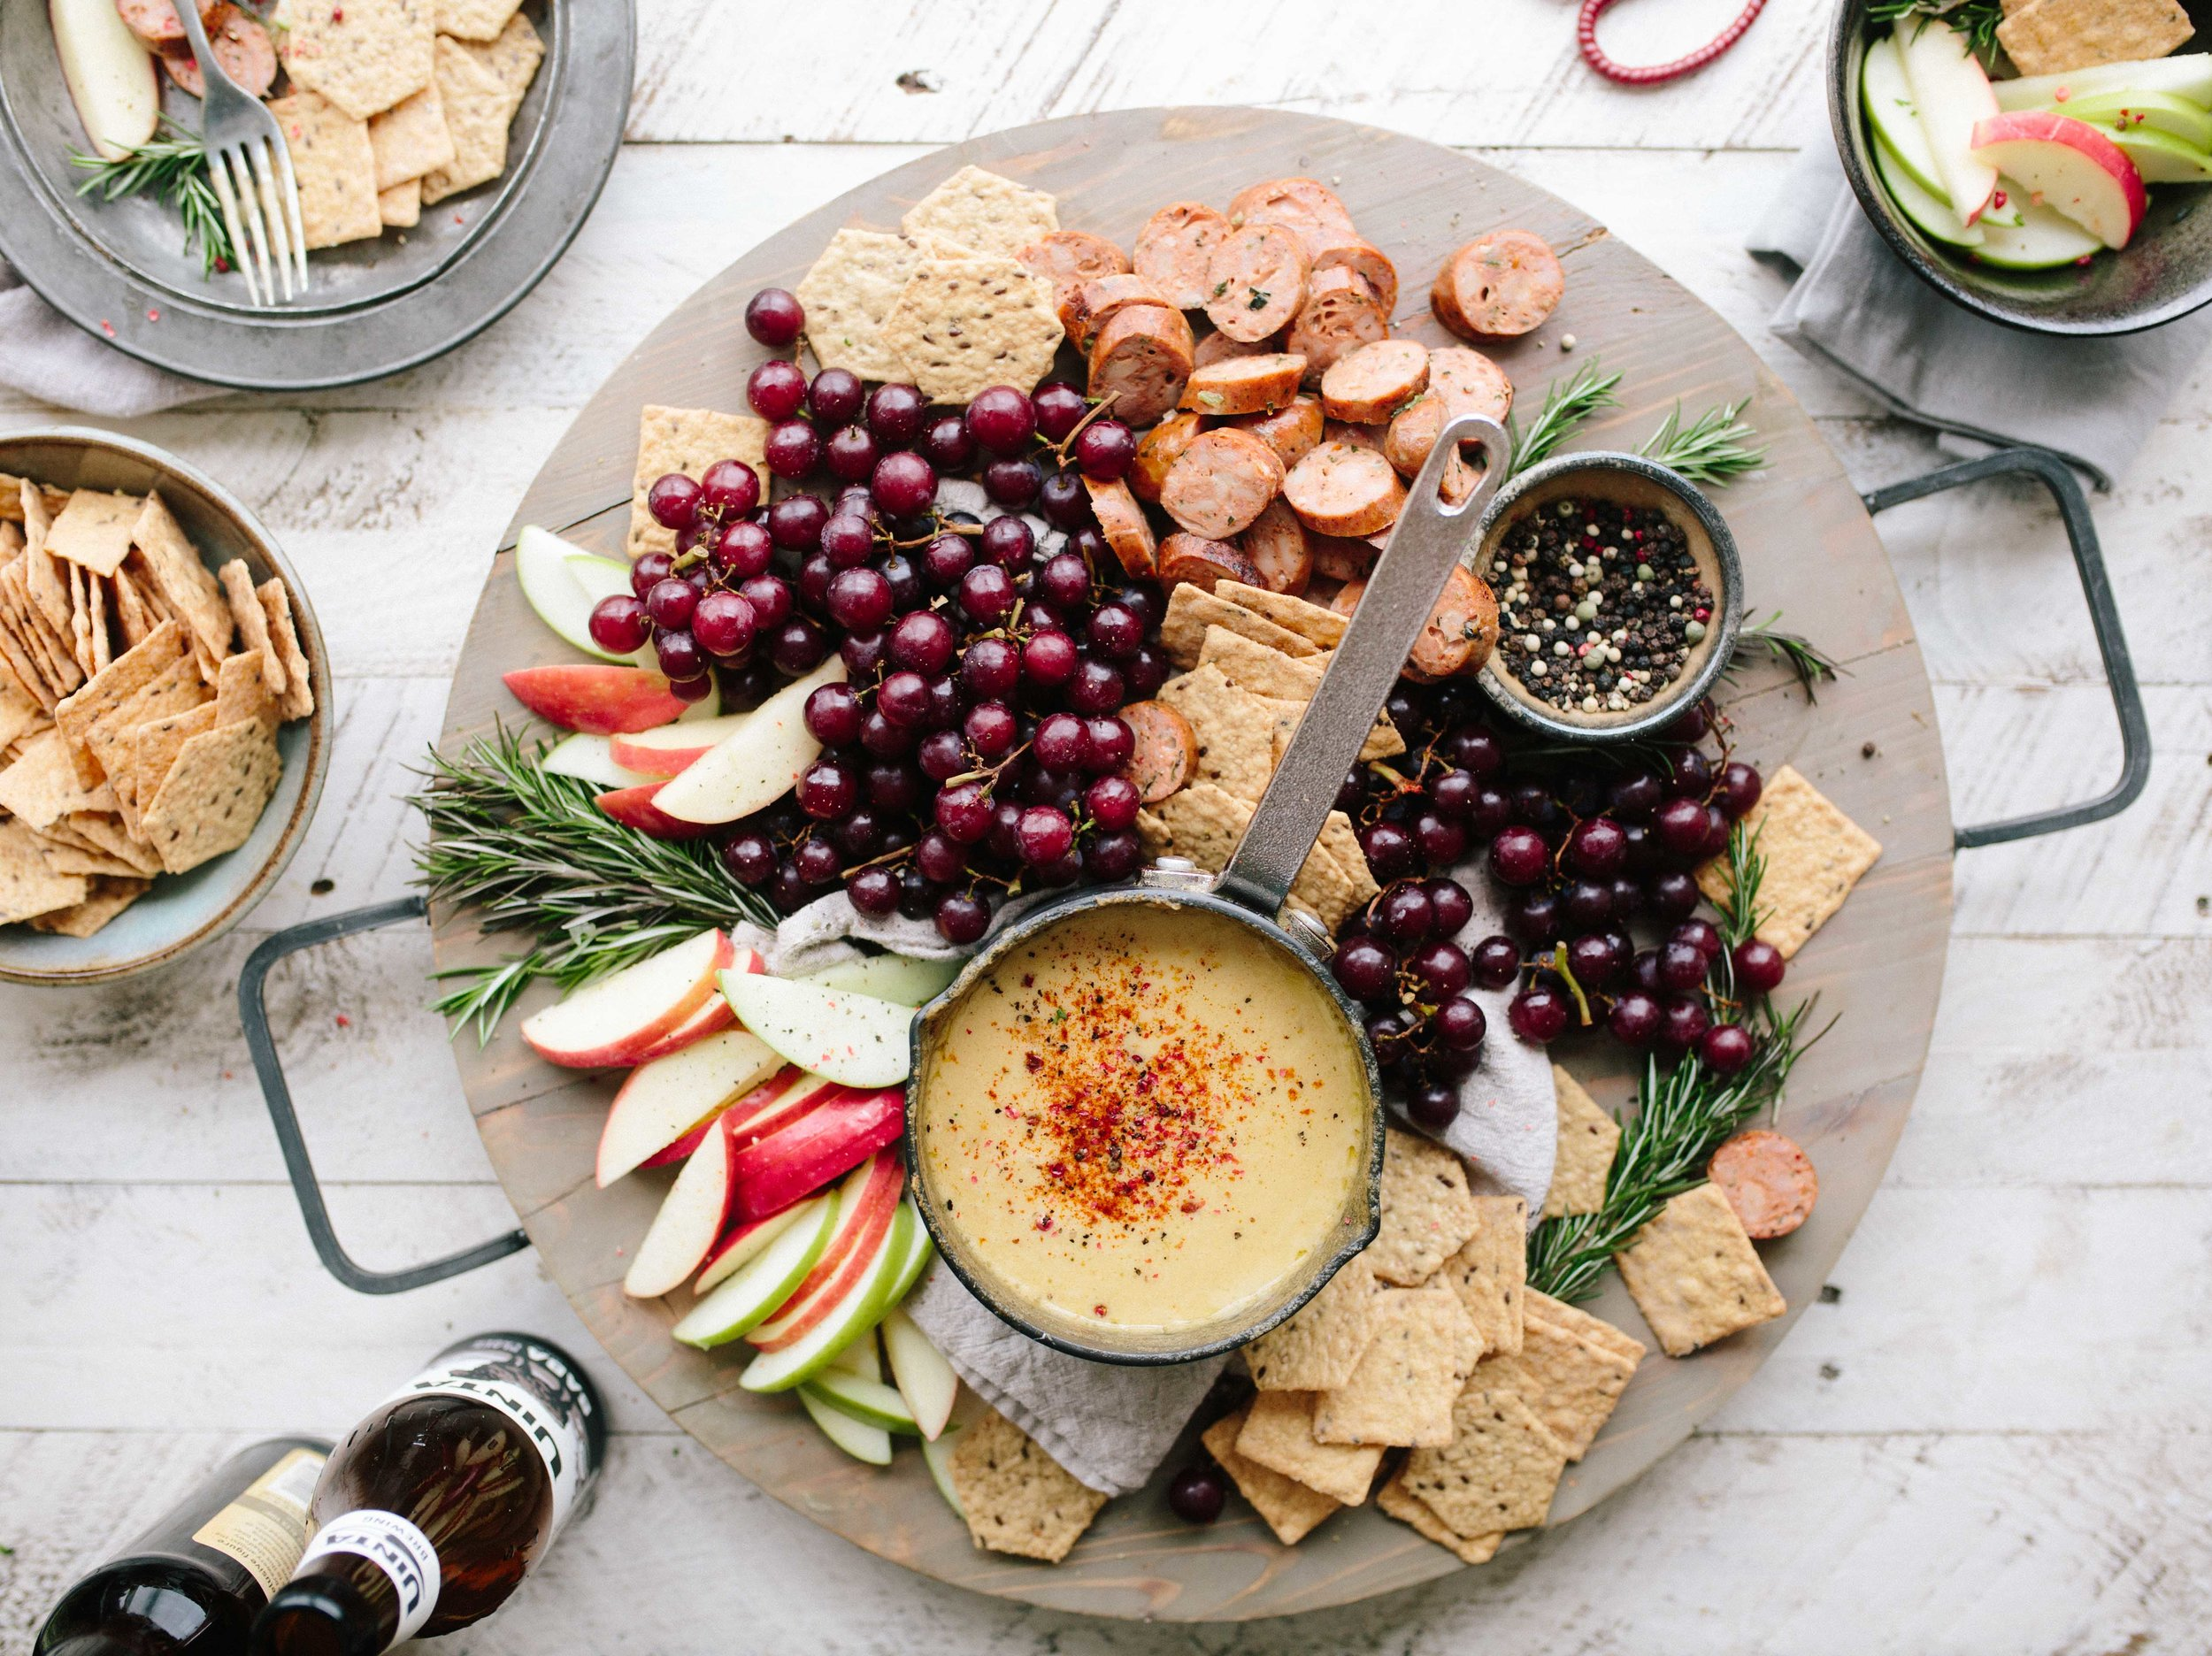 Bring a simple but beautiful fruit and cheese plate to your party. Add some low-sodium crackers and sliced baguette with some grainy mustard for extra flavor options.